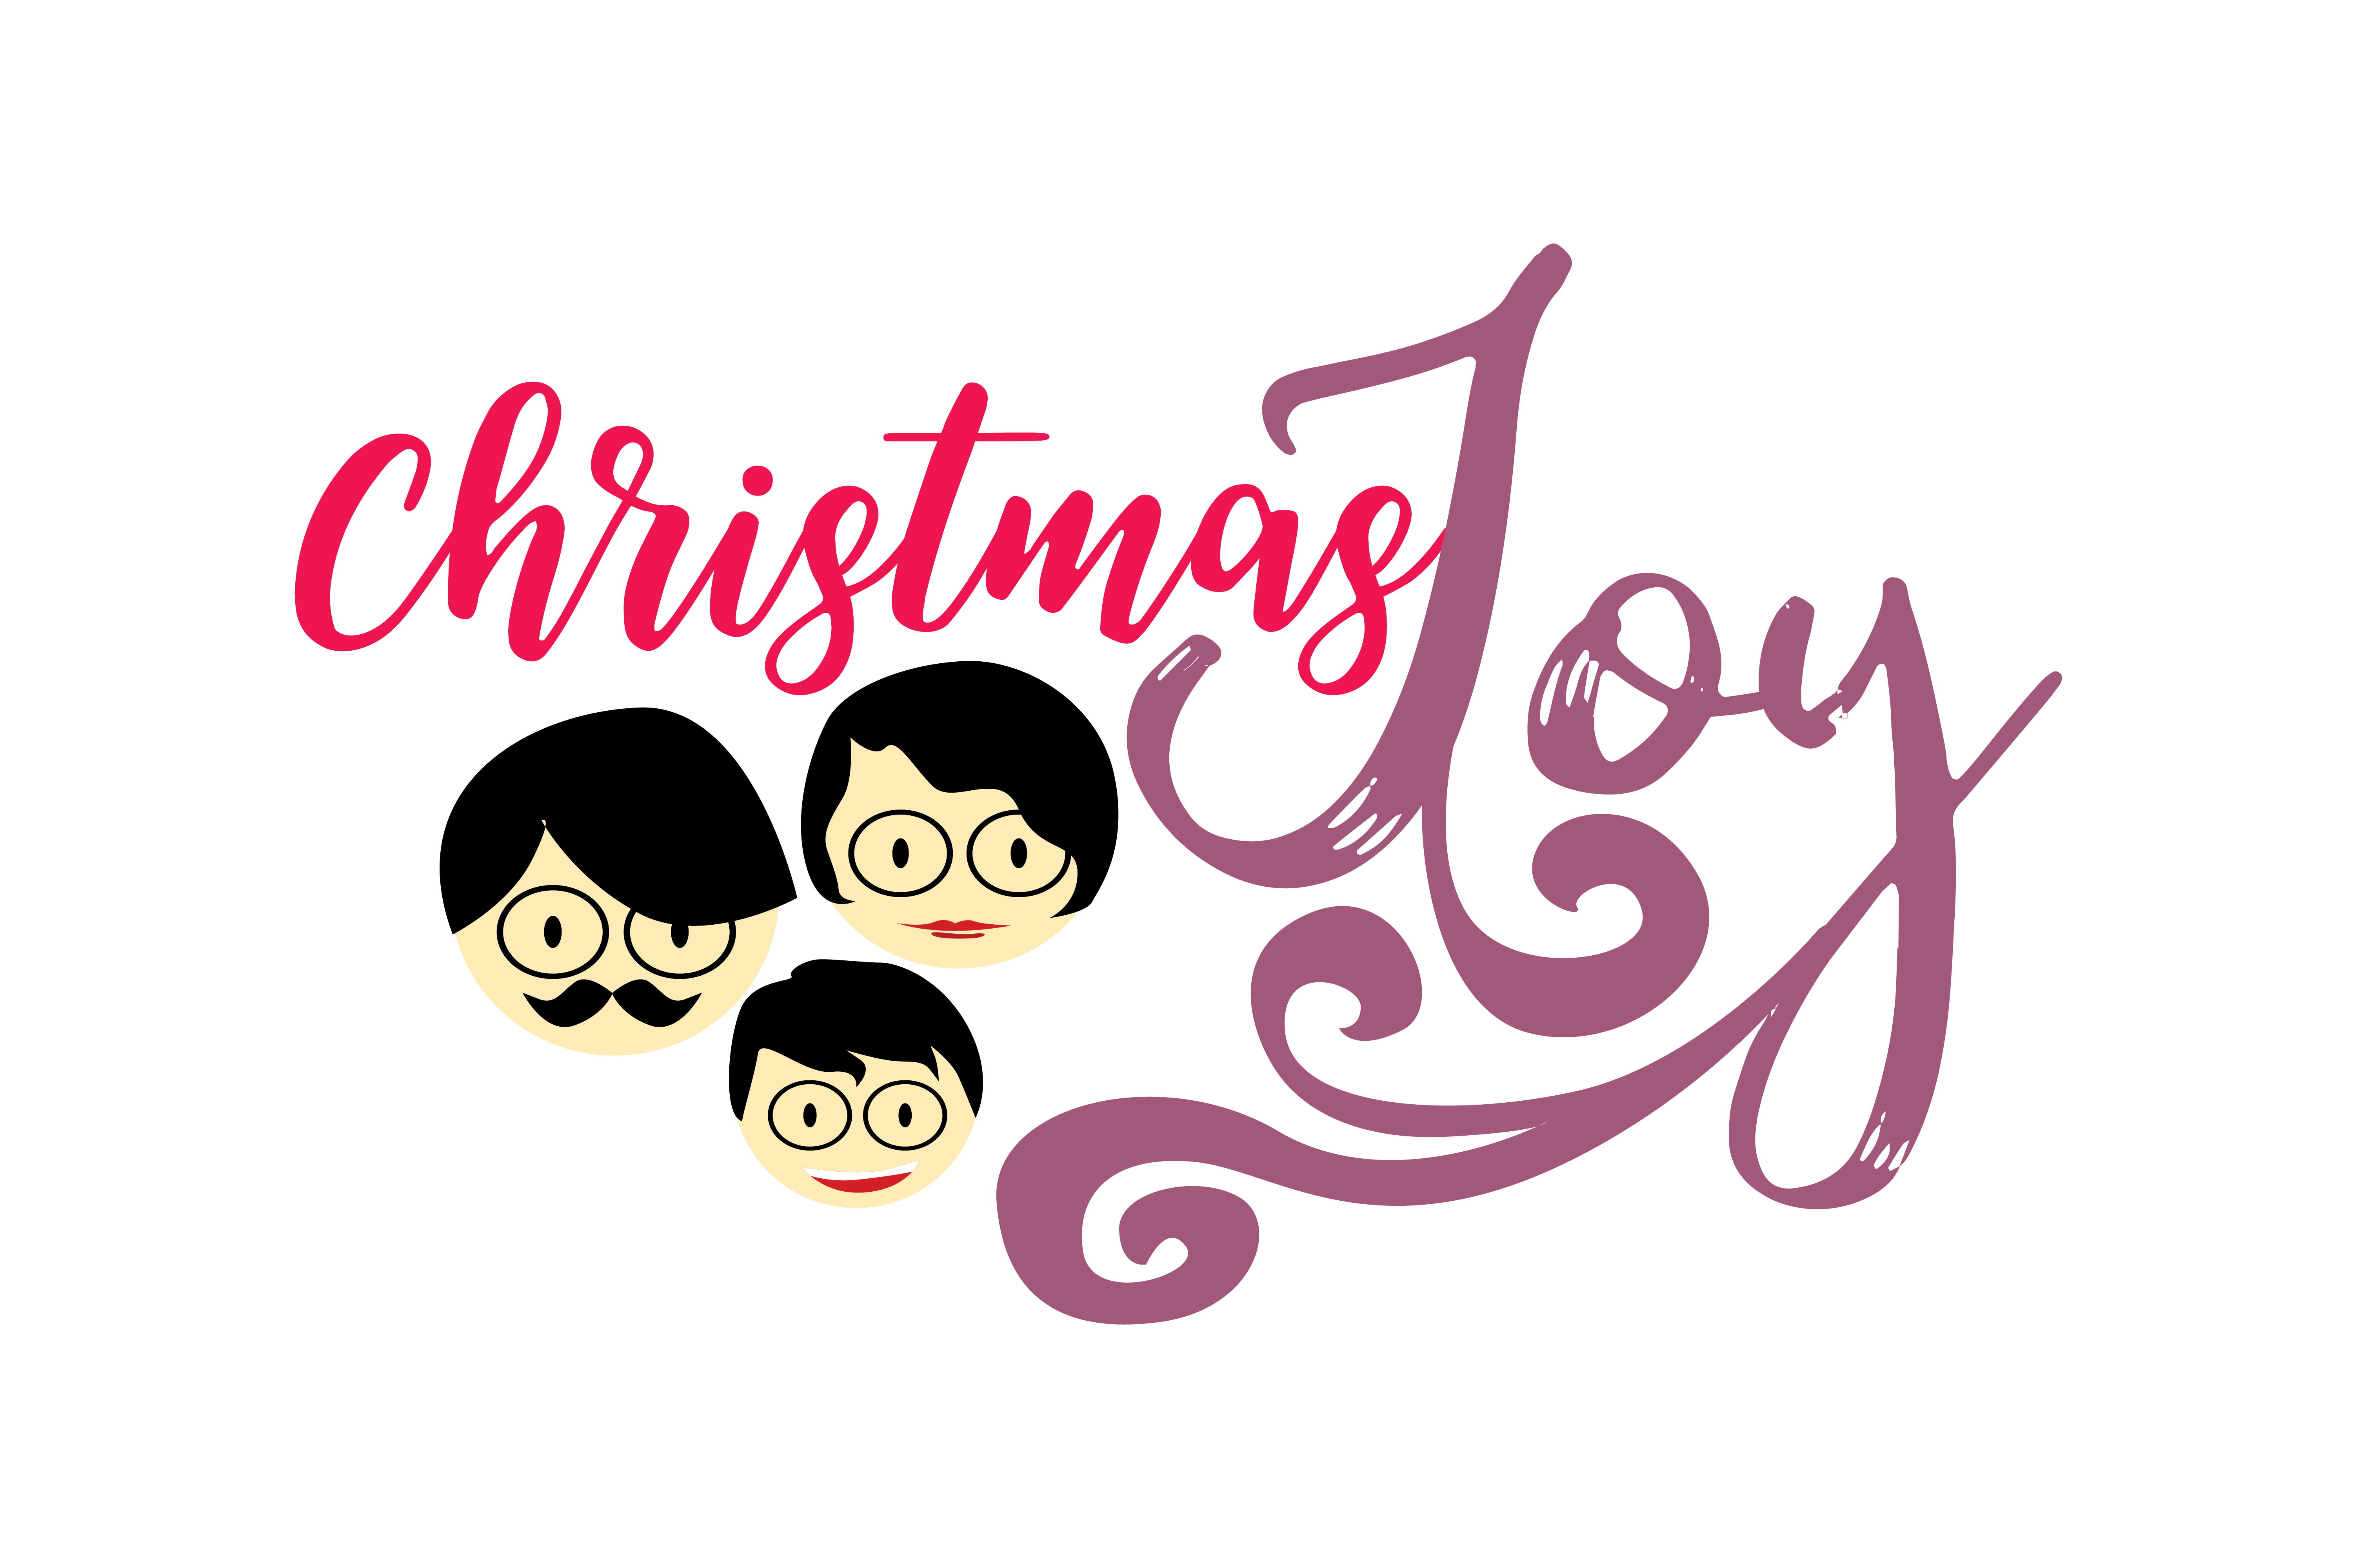 Download Free Christmas Joy Graphic By Thelucky Creative Fabrica for Cricut Explore, Silhouette and other cutting machines.